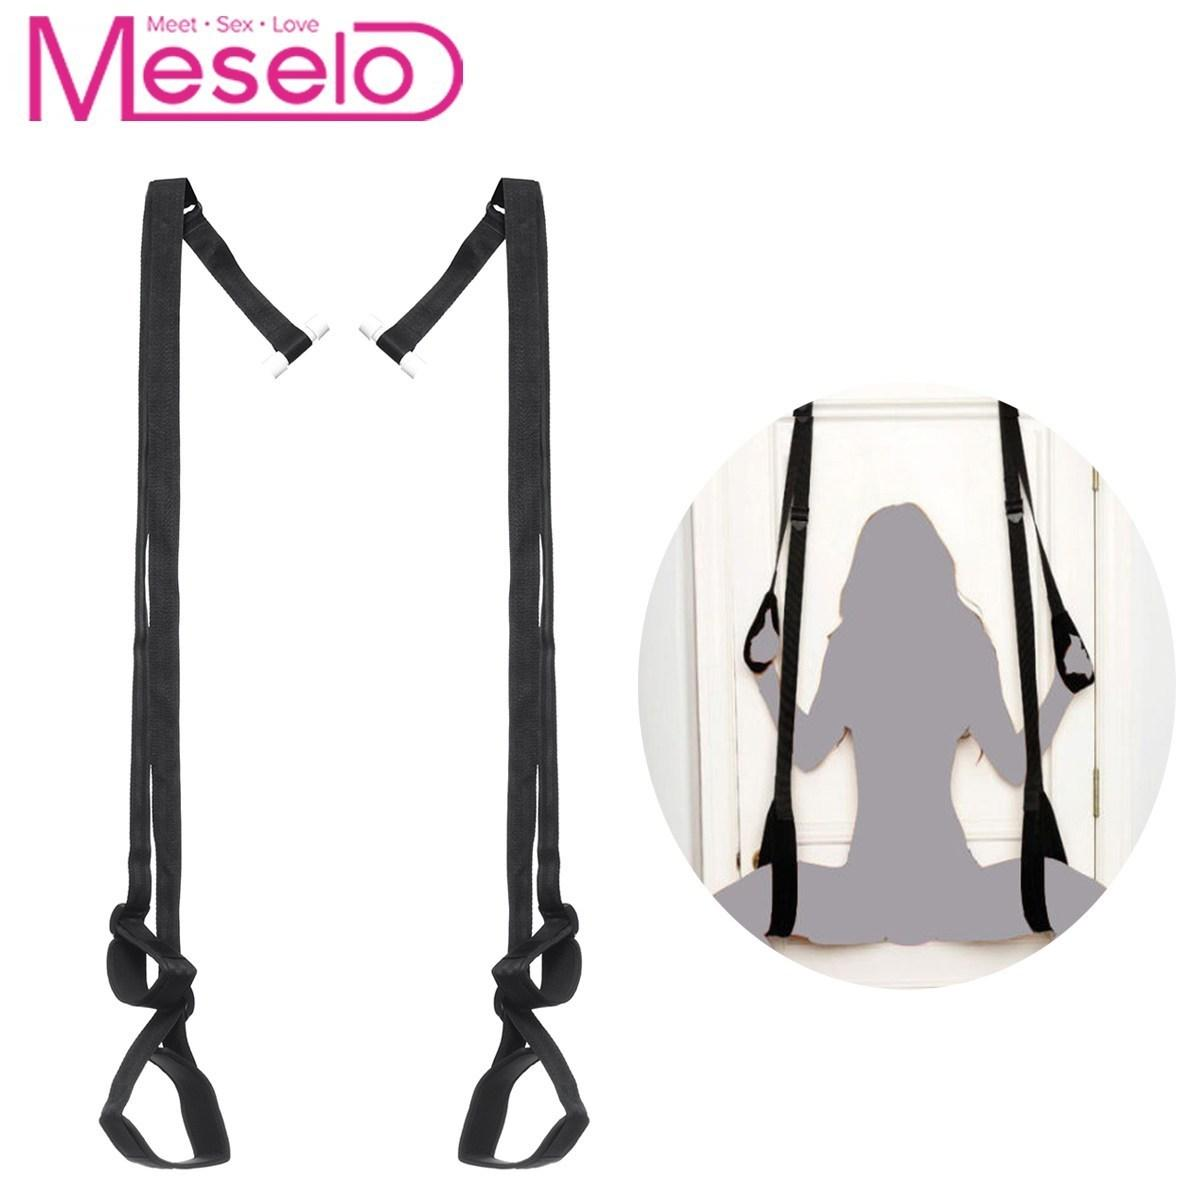 Meselo Adult Bdsm Game Sex Toys Swing Bondage Straps For Couple Flirting  Women Men Sexual Hanging Sling Rope Toy Erotic Product D19011105 Adult  Products ...